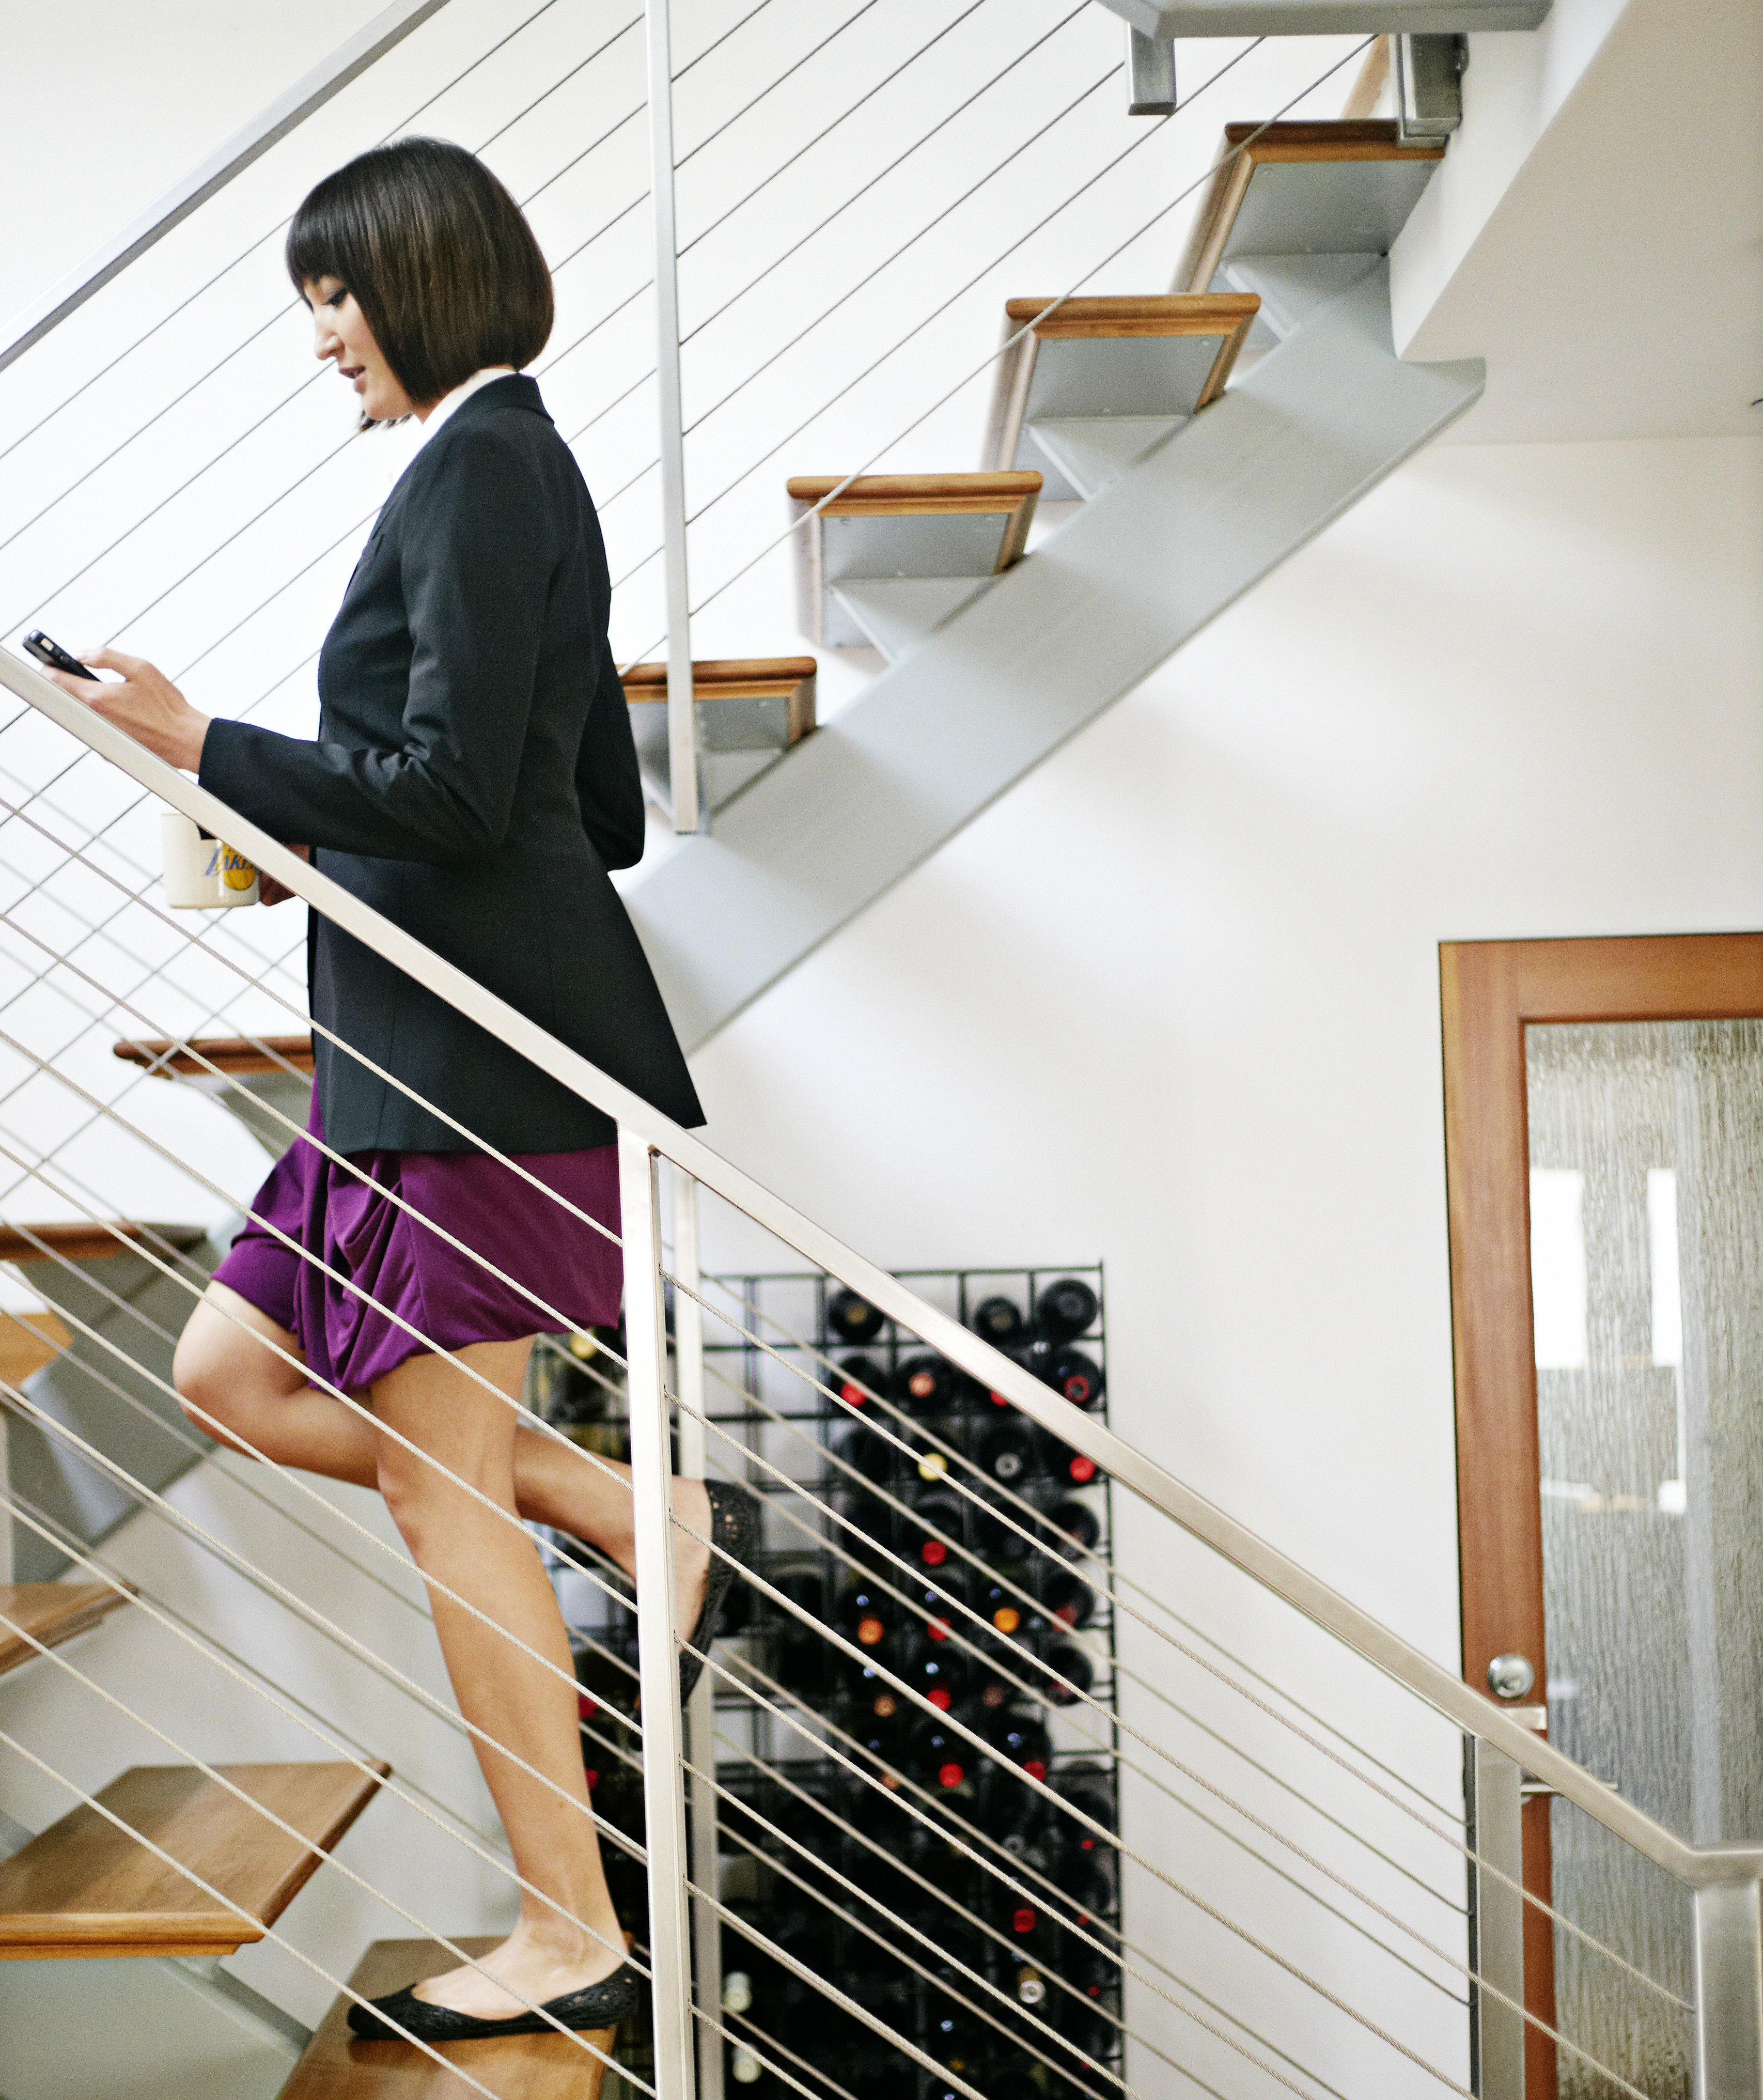 woman-climbing-stairs-texting